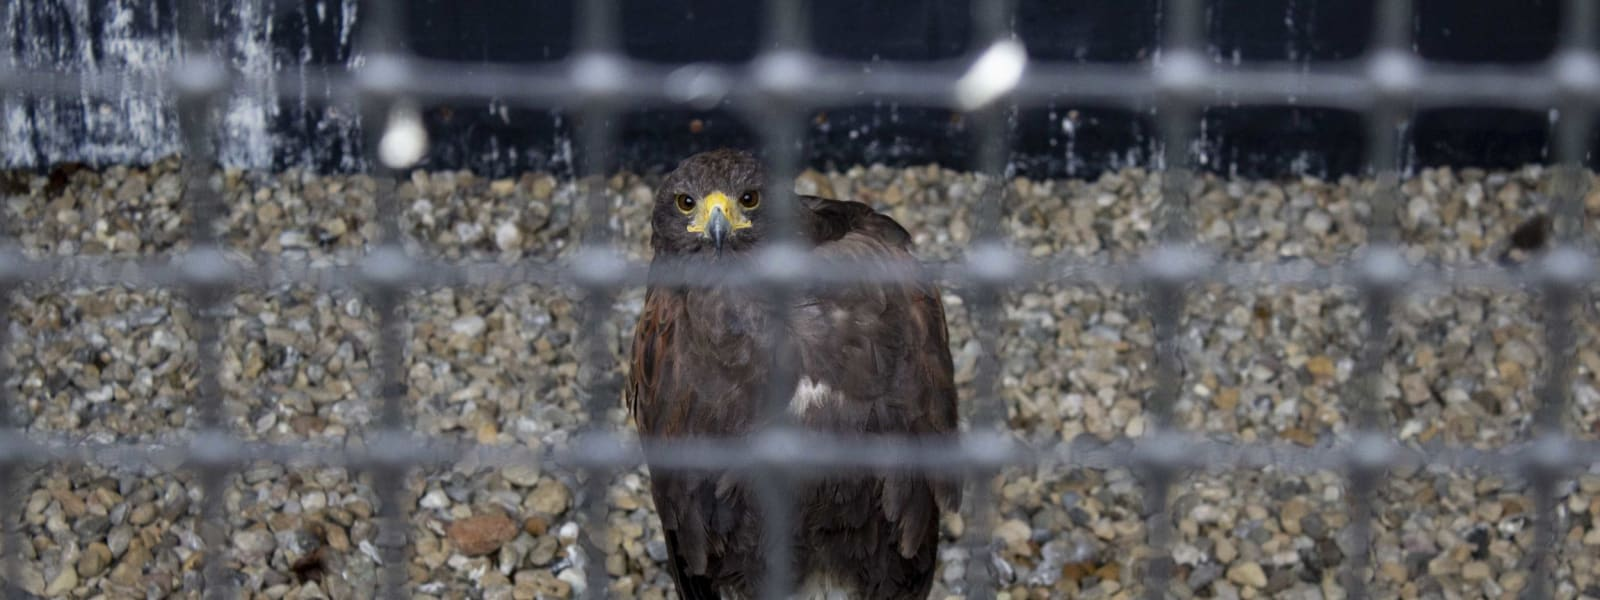 'Largest Travelling Display of Birds of Prey in the UK' Found to be Operating 'Illegally'